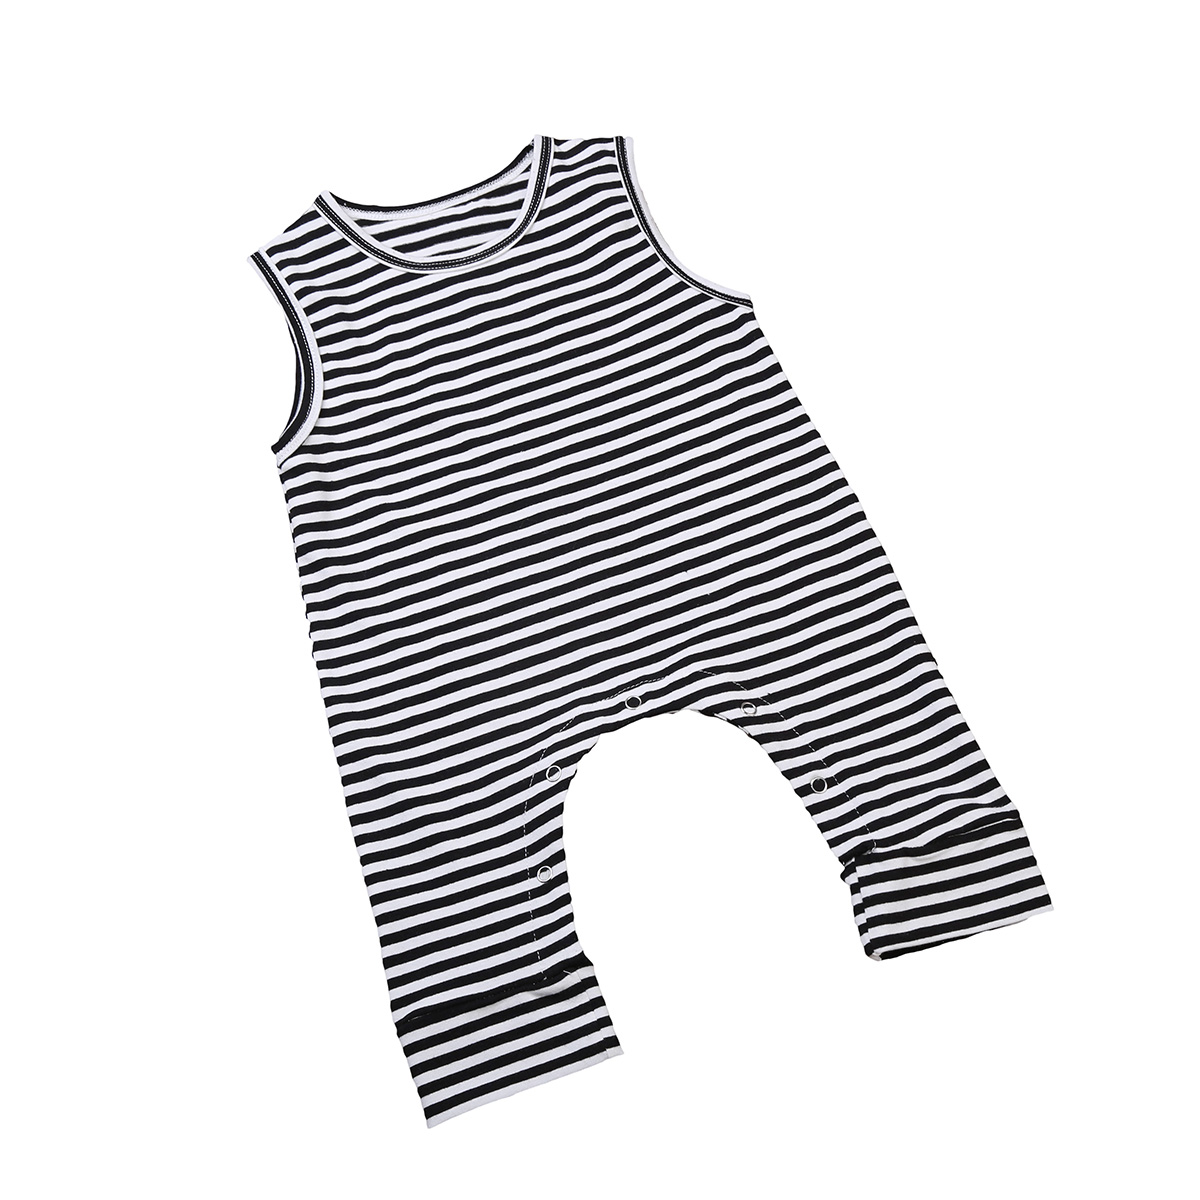 Toddler Infant Newborn Baby Girl Boy Summer Stripe Romper Sleeveless Jumpsuit Harem Pants Kids Outfits Clothes